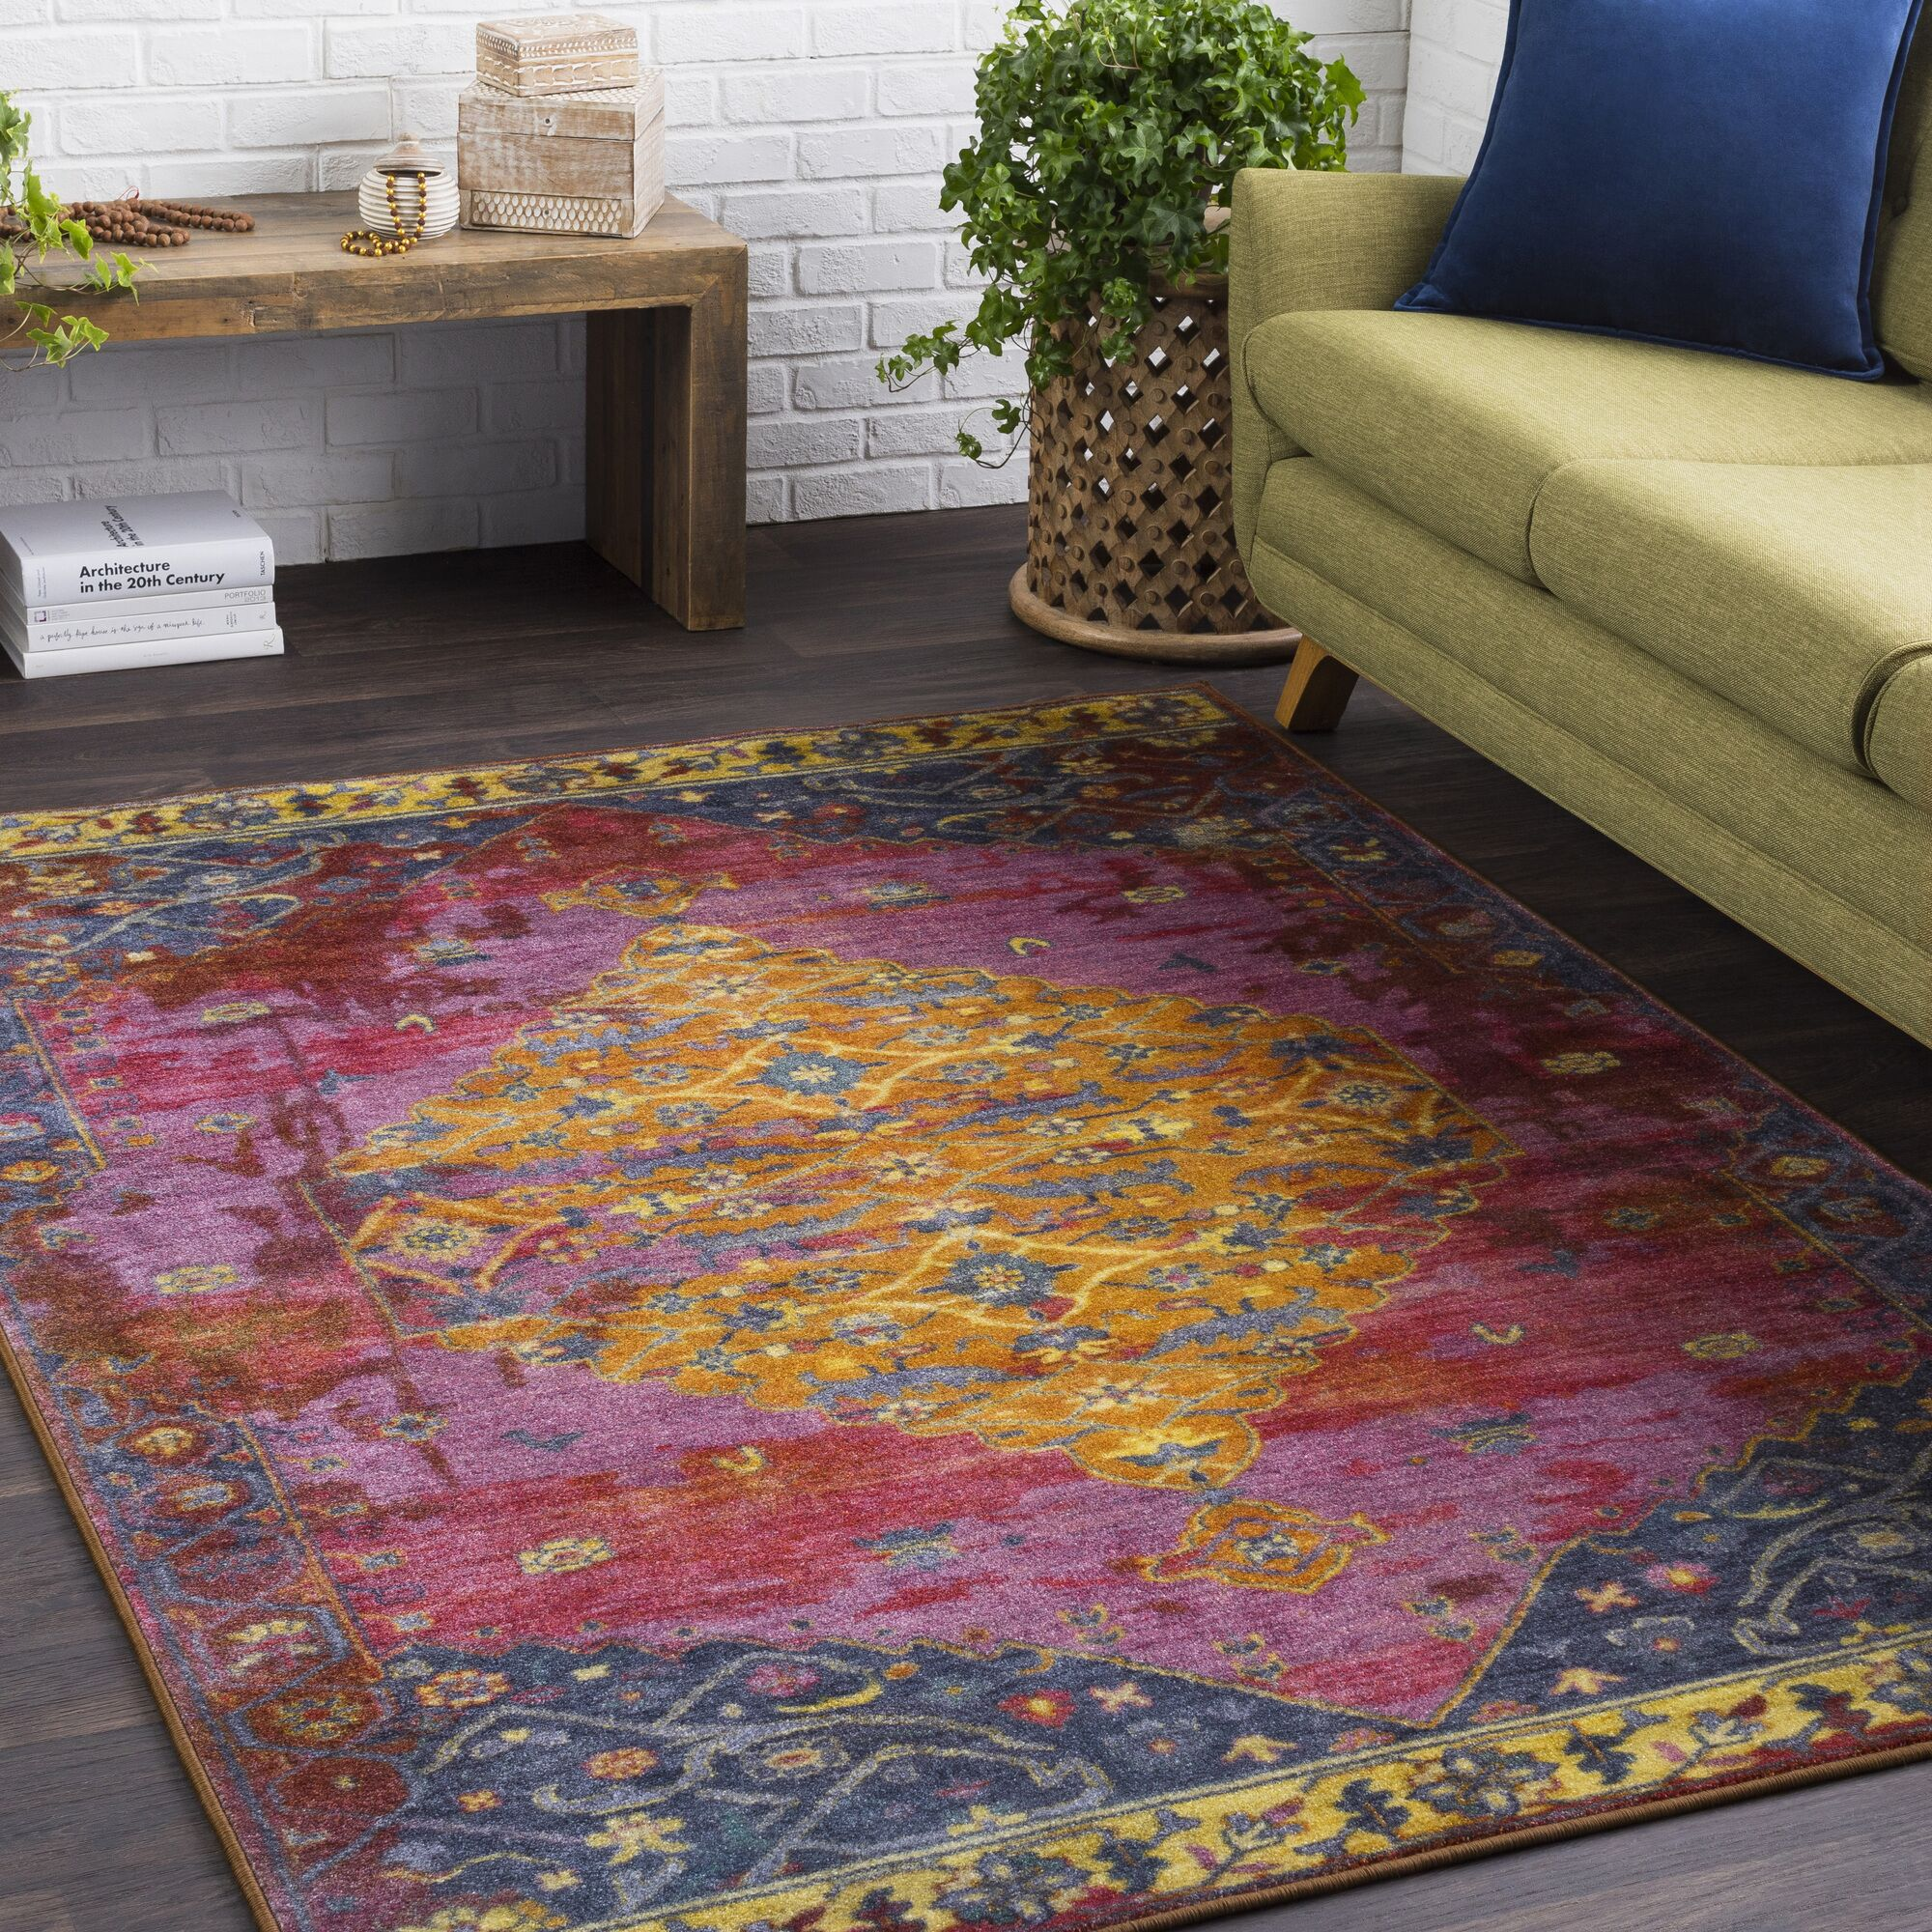 Wyclif Overdyed Floral Lilac/Purple Area Rug Rug Size: Rectangle 7'10